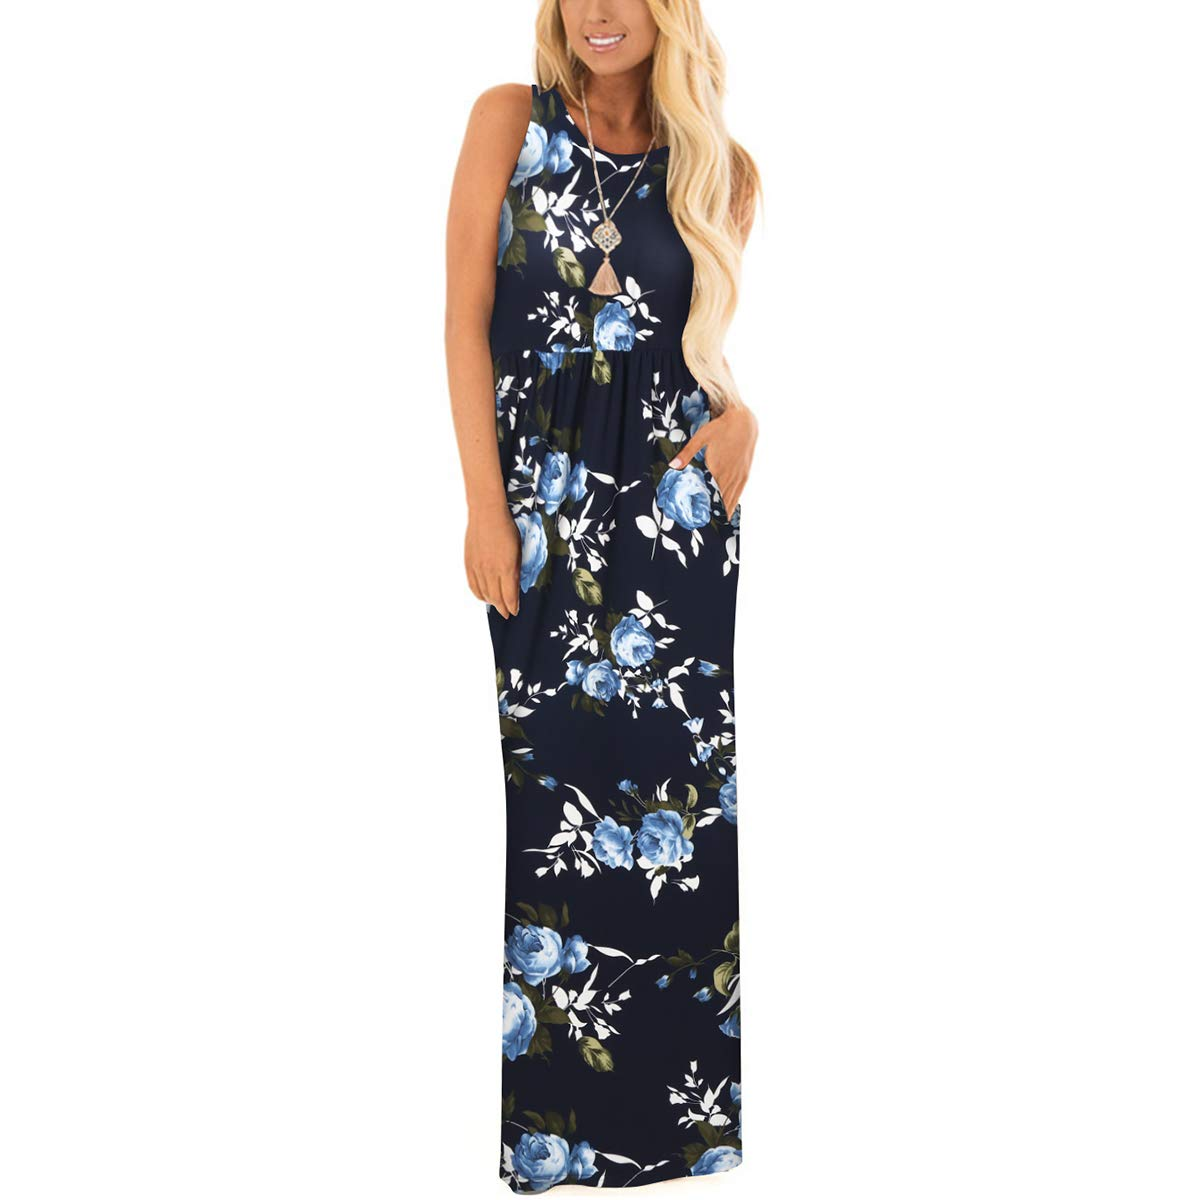 35f0185a778 ZZER Women s Sleeveless Floral Racerback Loose Swing Casual Tunic Beach  Long Maxi Dresses with Pockets at Amazon Women s Clothing store